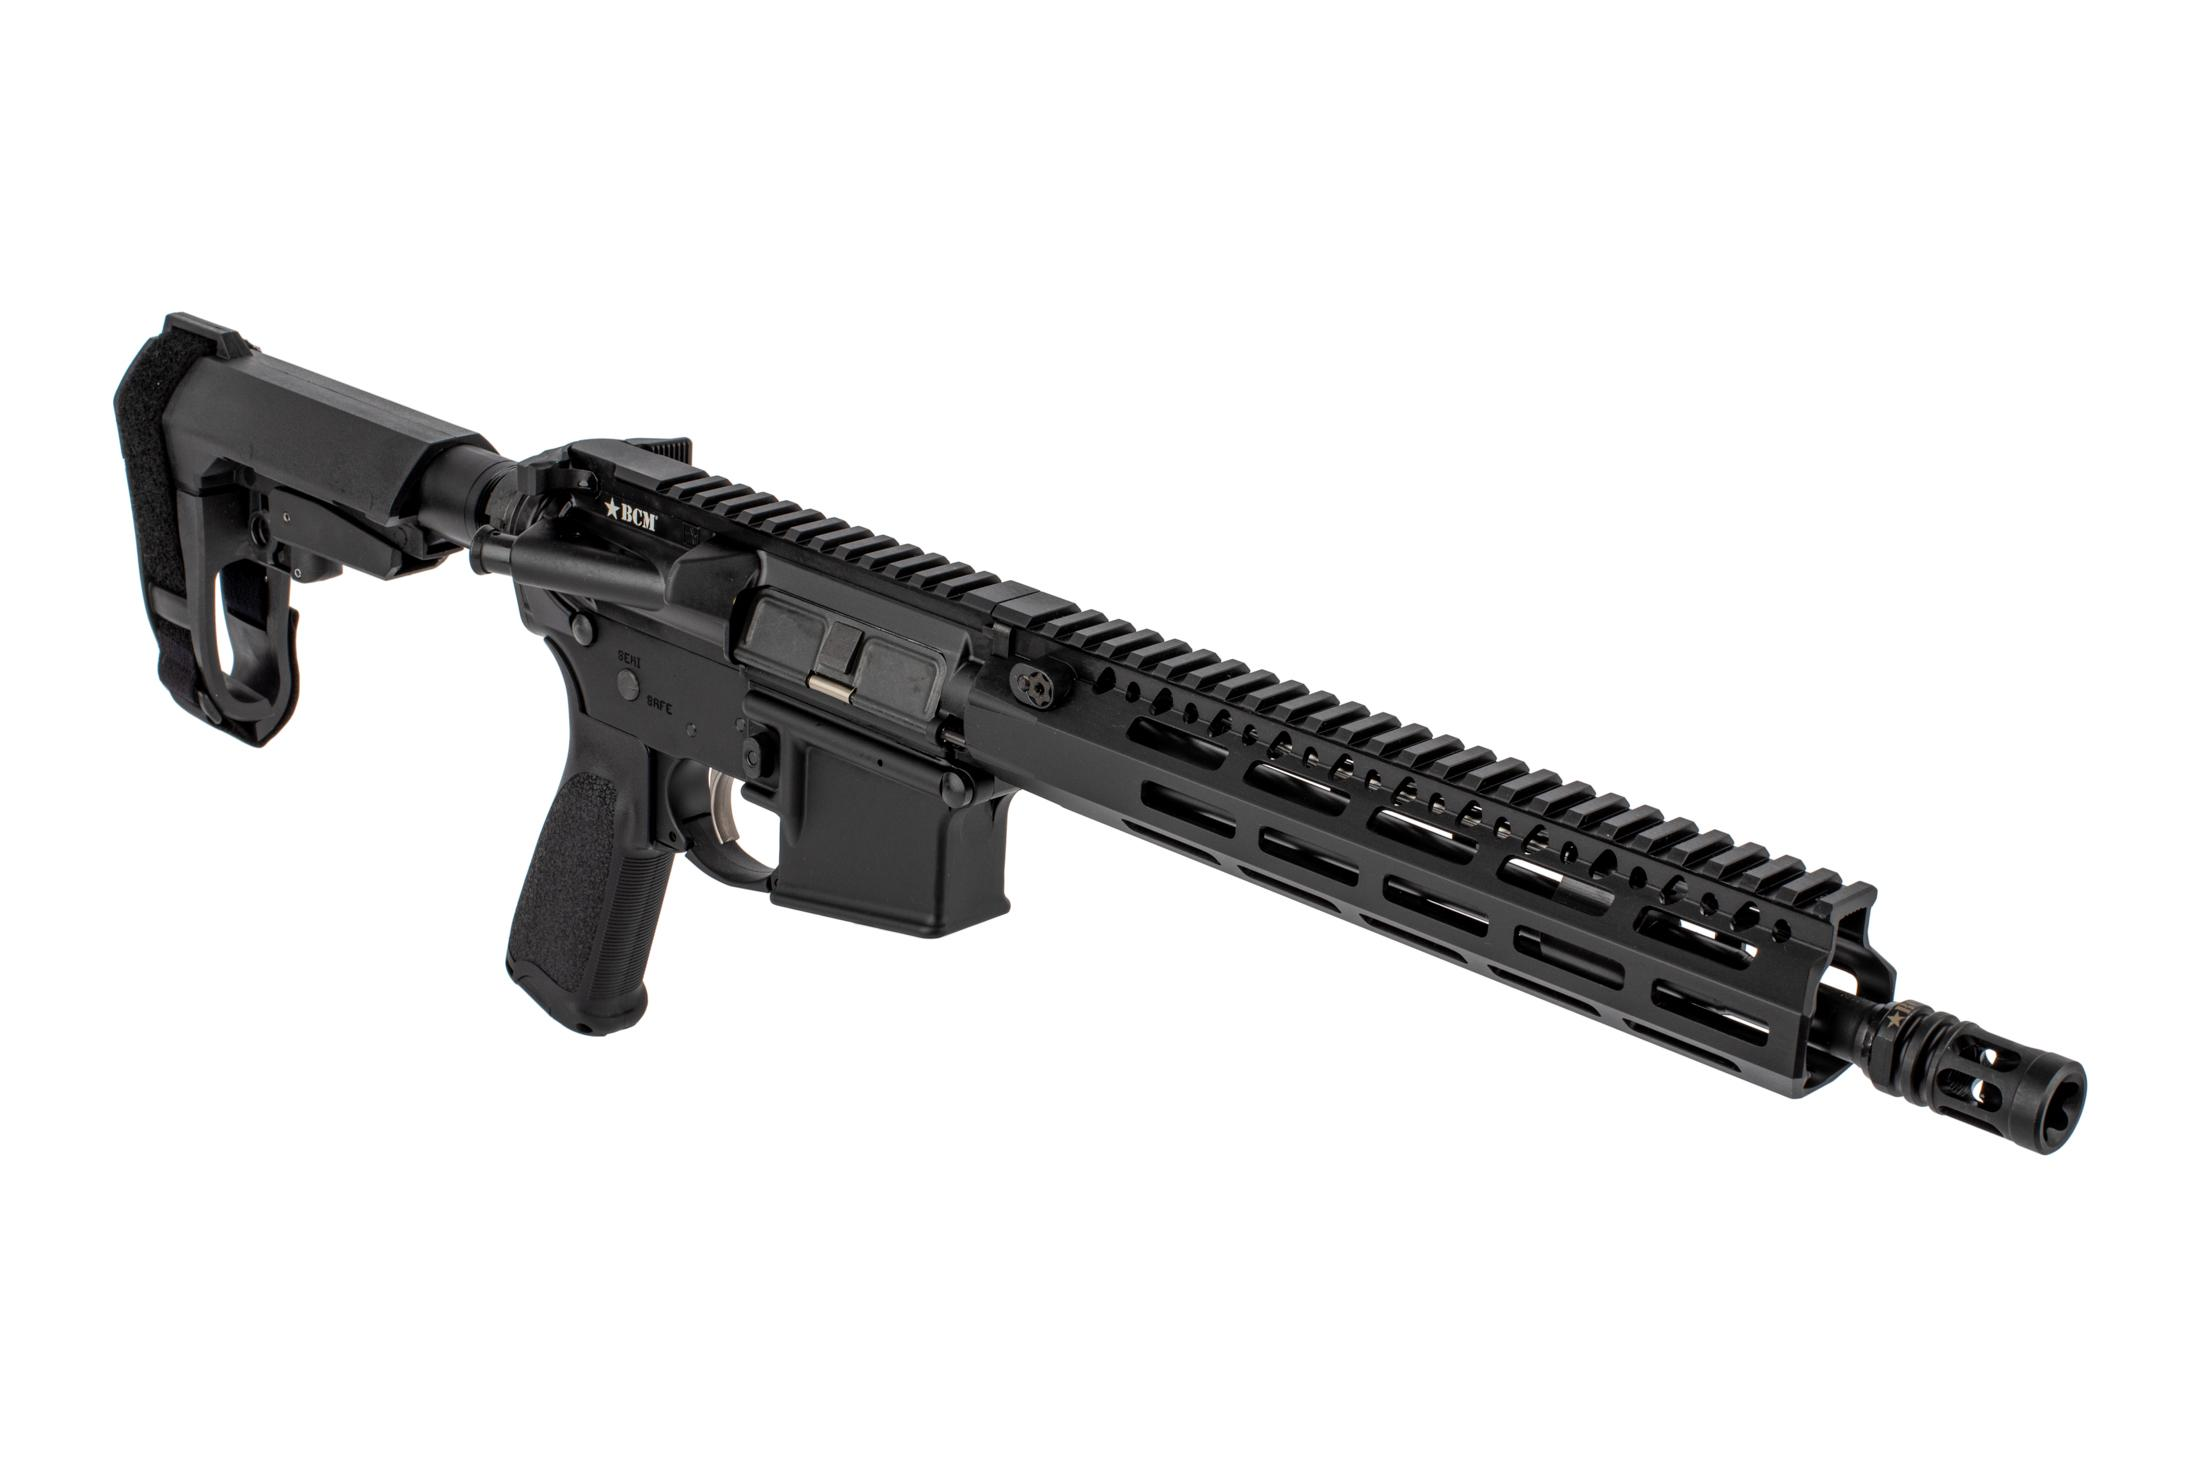 The BCM Recce-11 AR15 Pistol comes with an SBA3 arm brace